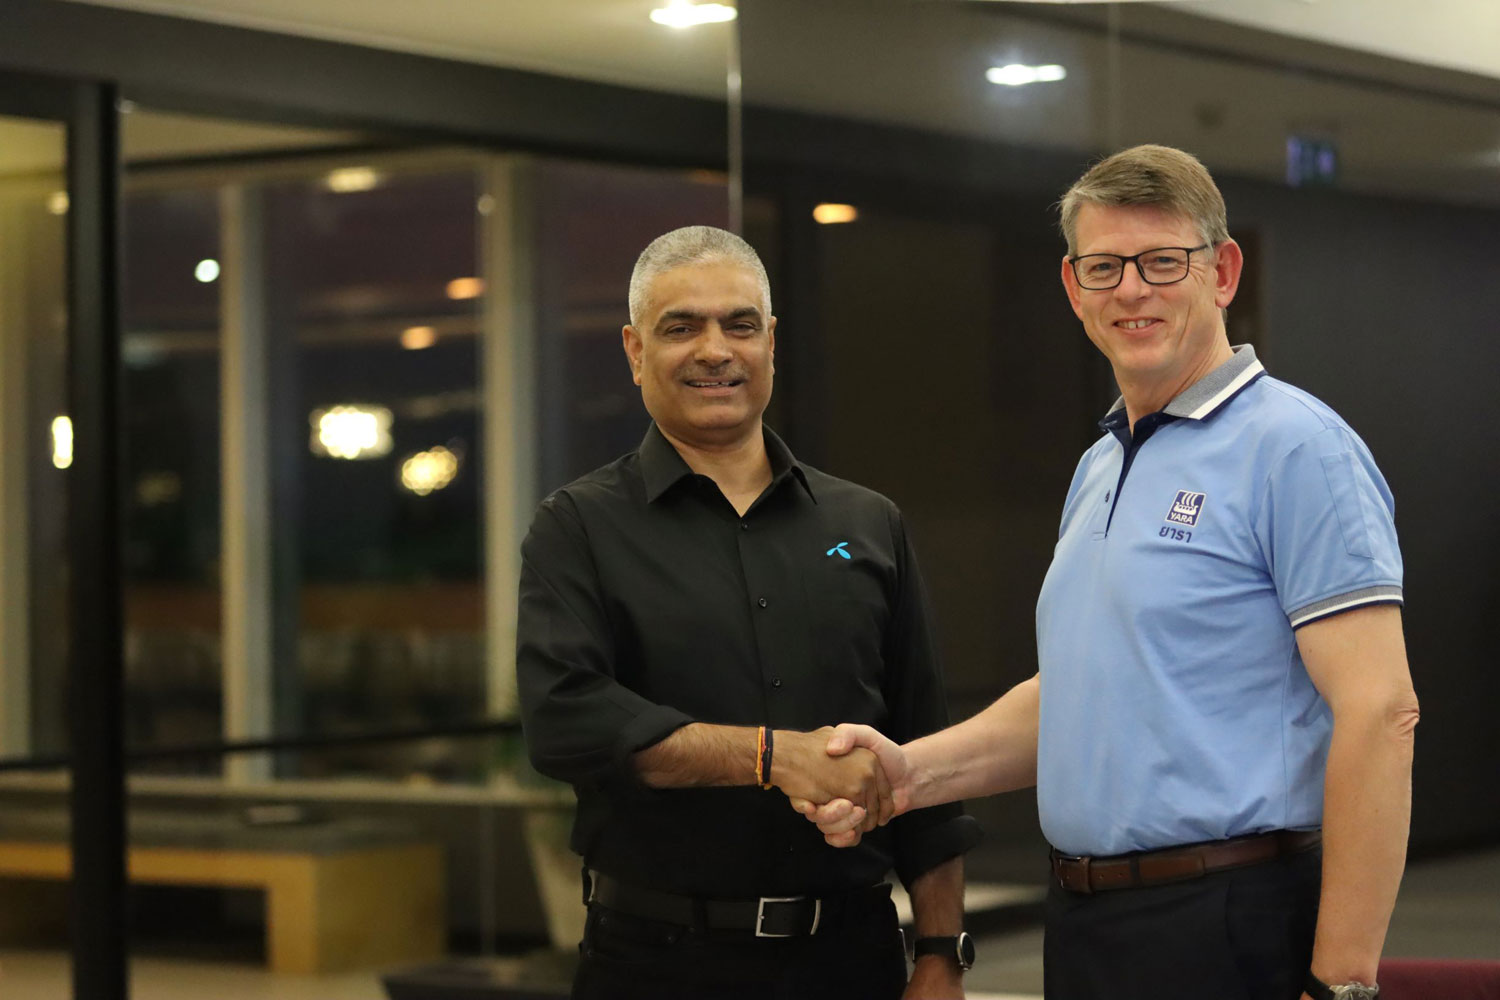 Sharad Mehrotra, chief executive officer at dtac joined hands with Terje Knutsen, EVP Sales & Marketing at Yara in the announcement of a strategic collaboration to launch digital agriculture solutions in Thailand.